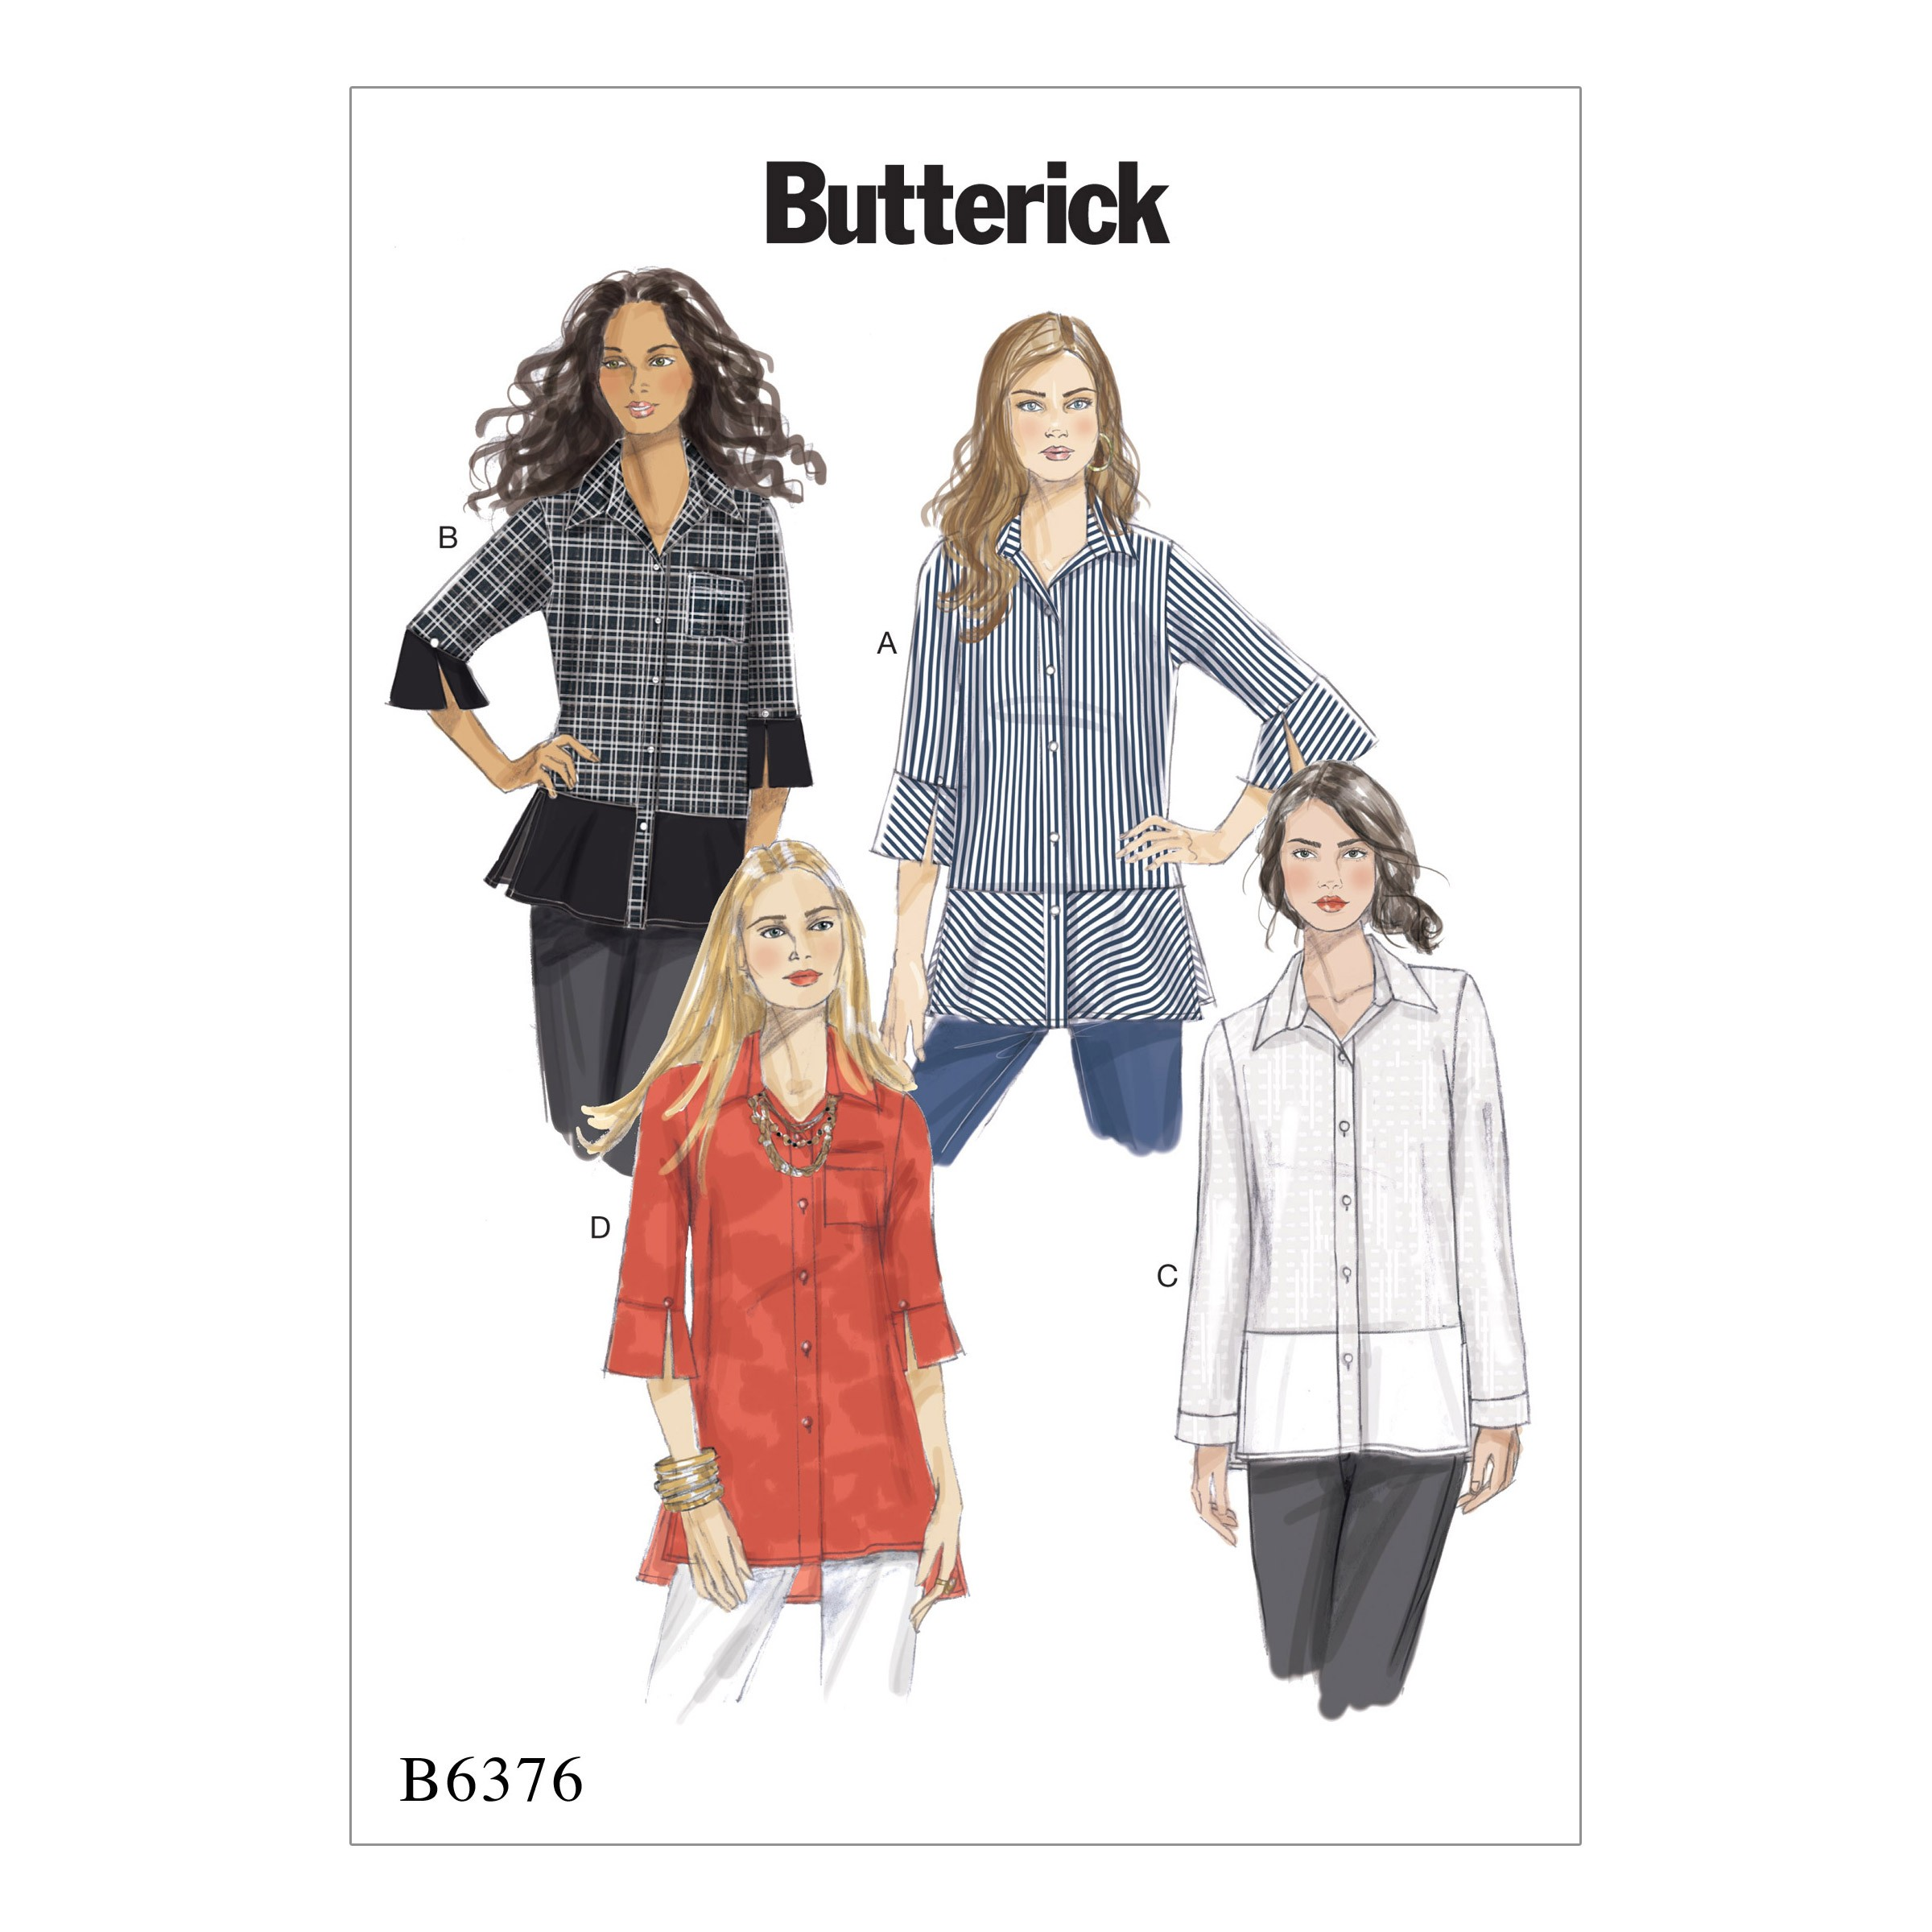 Butterick Sewing Pattern 6376 Misses' Button Down Shirt with Side Slits